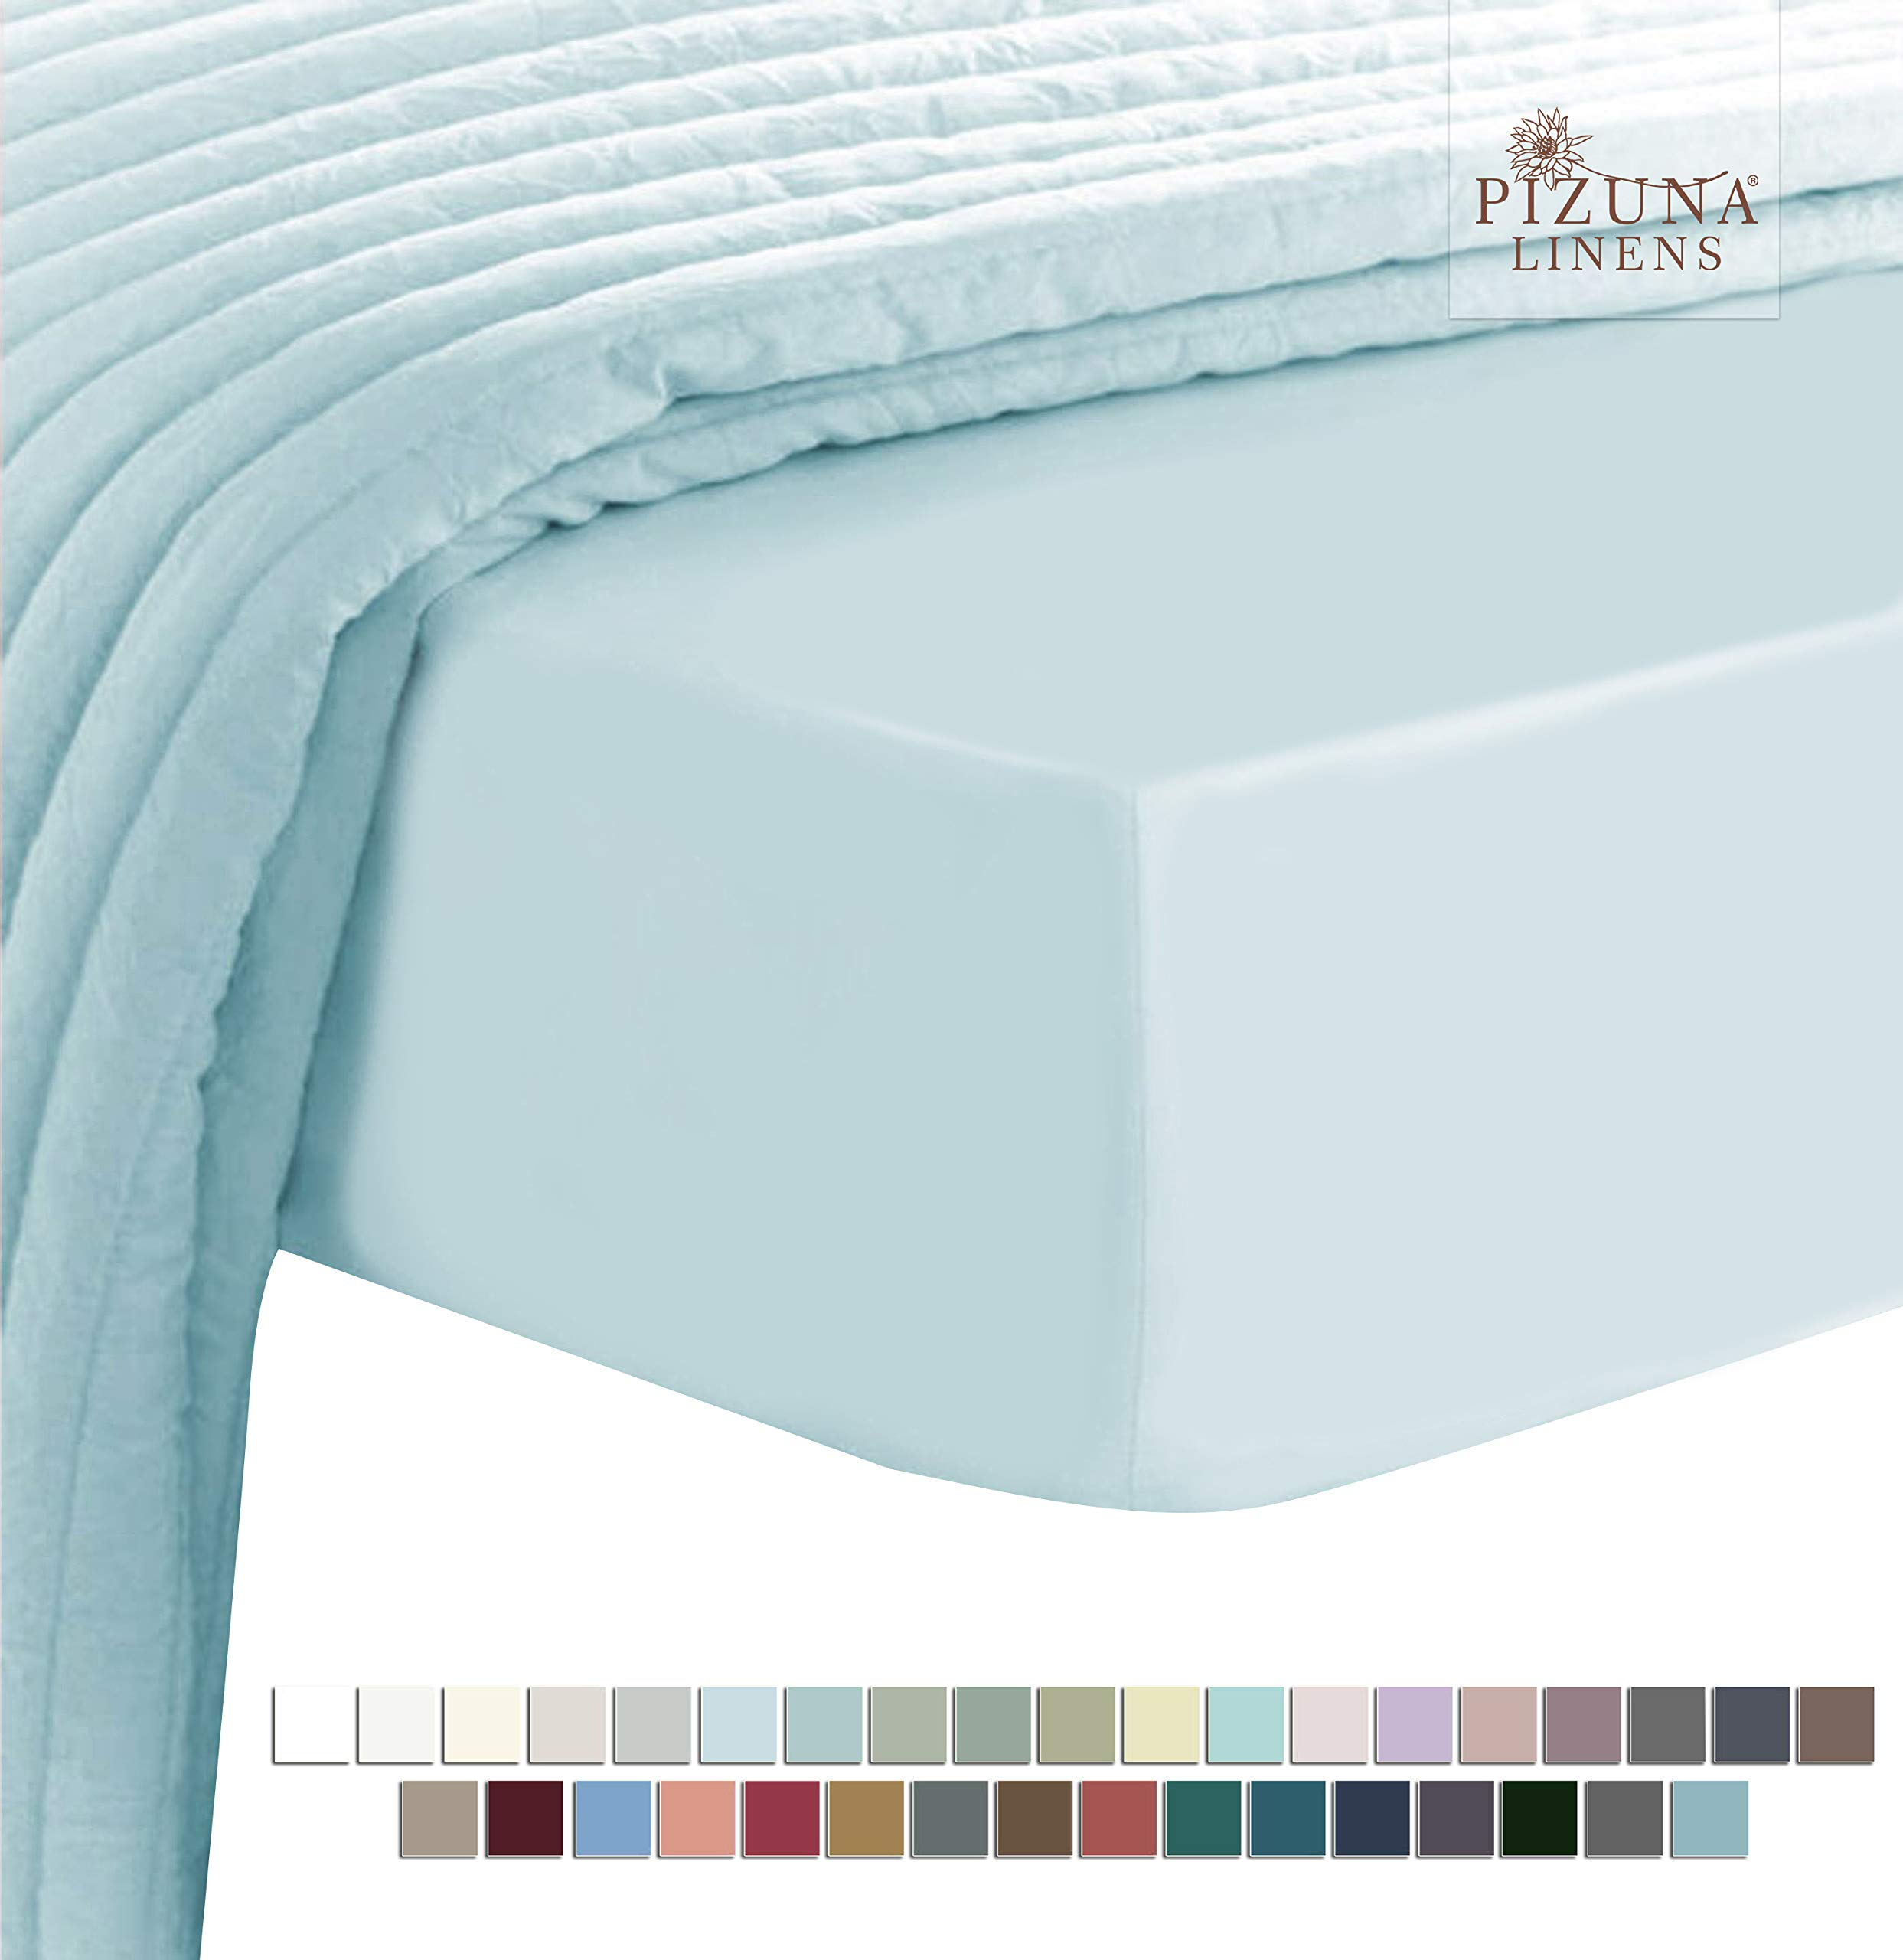 Pizuna Soft 400 Thread Count Cotton Full Fitted Sheets Light Blue 1pc, 100% Long Staple Cotton Sateen, Soft Fitted Bed Sheet fit Upto 15 inch Deep Pocket (Baby Blue 100% Cotton Full Size Fitted Sheet)